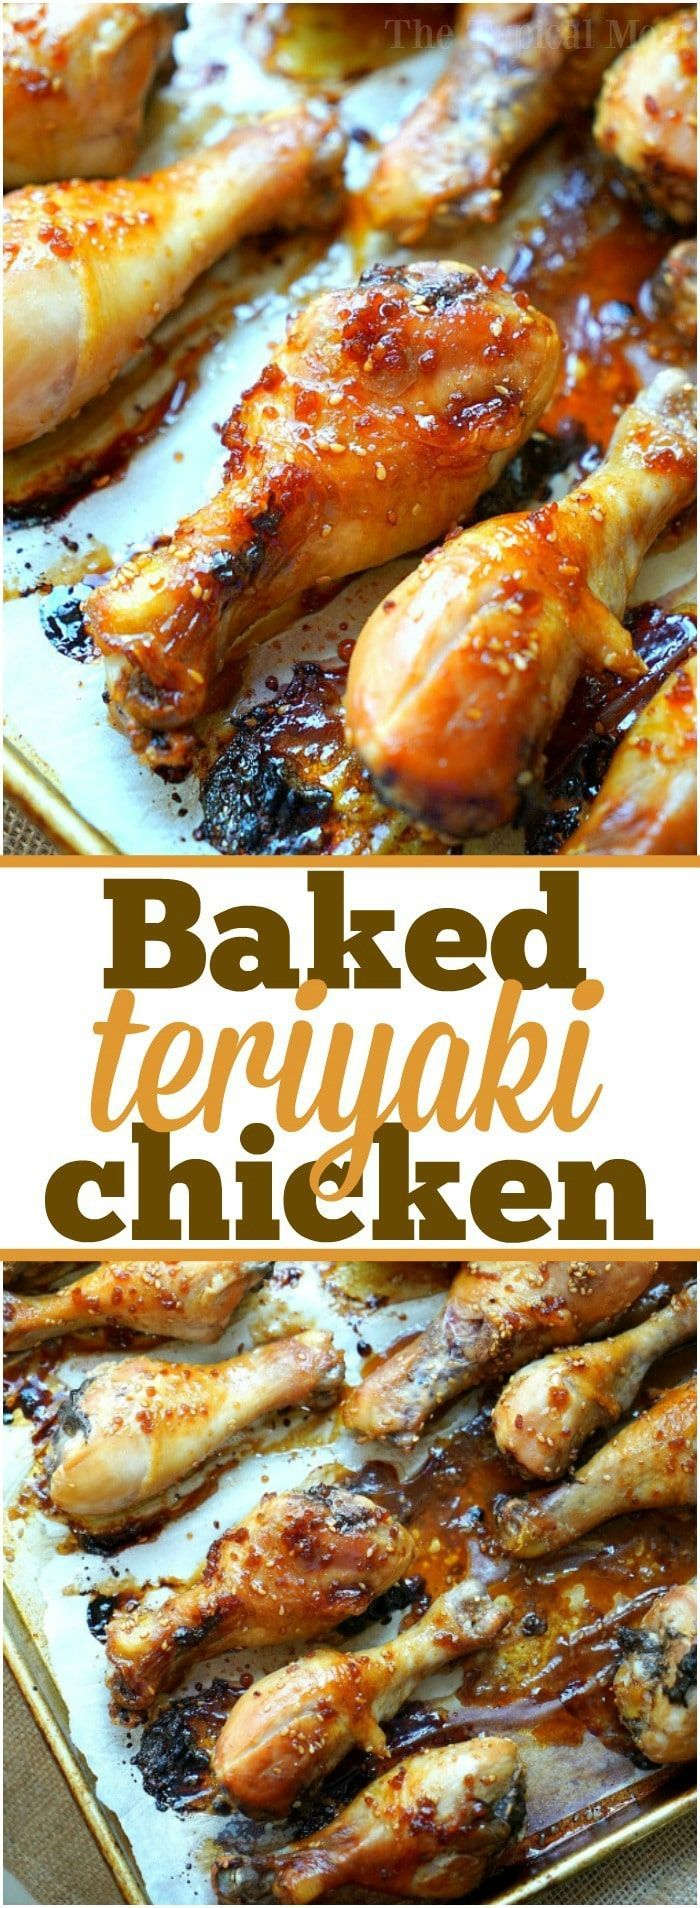 Baked teriyaki chicken drumsticks with an easy homemade sweet and spicy sauce you'll love! Moist chicken legs cooked in the oven in just about an hour.